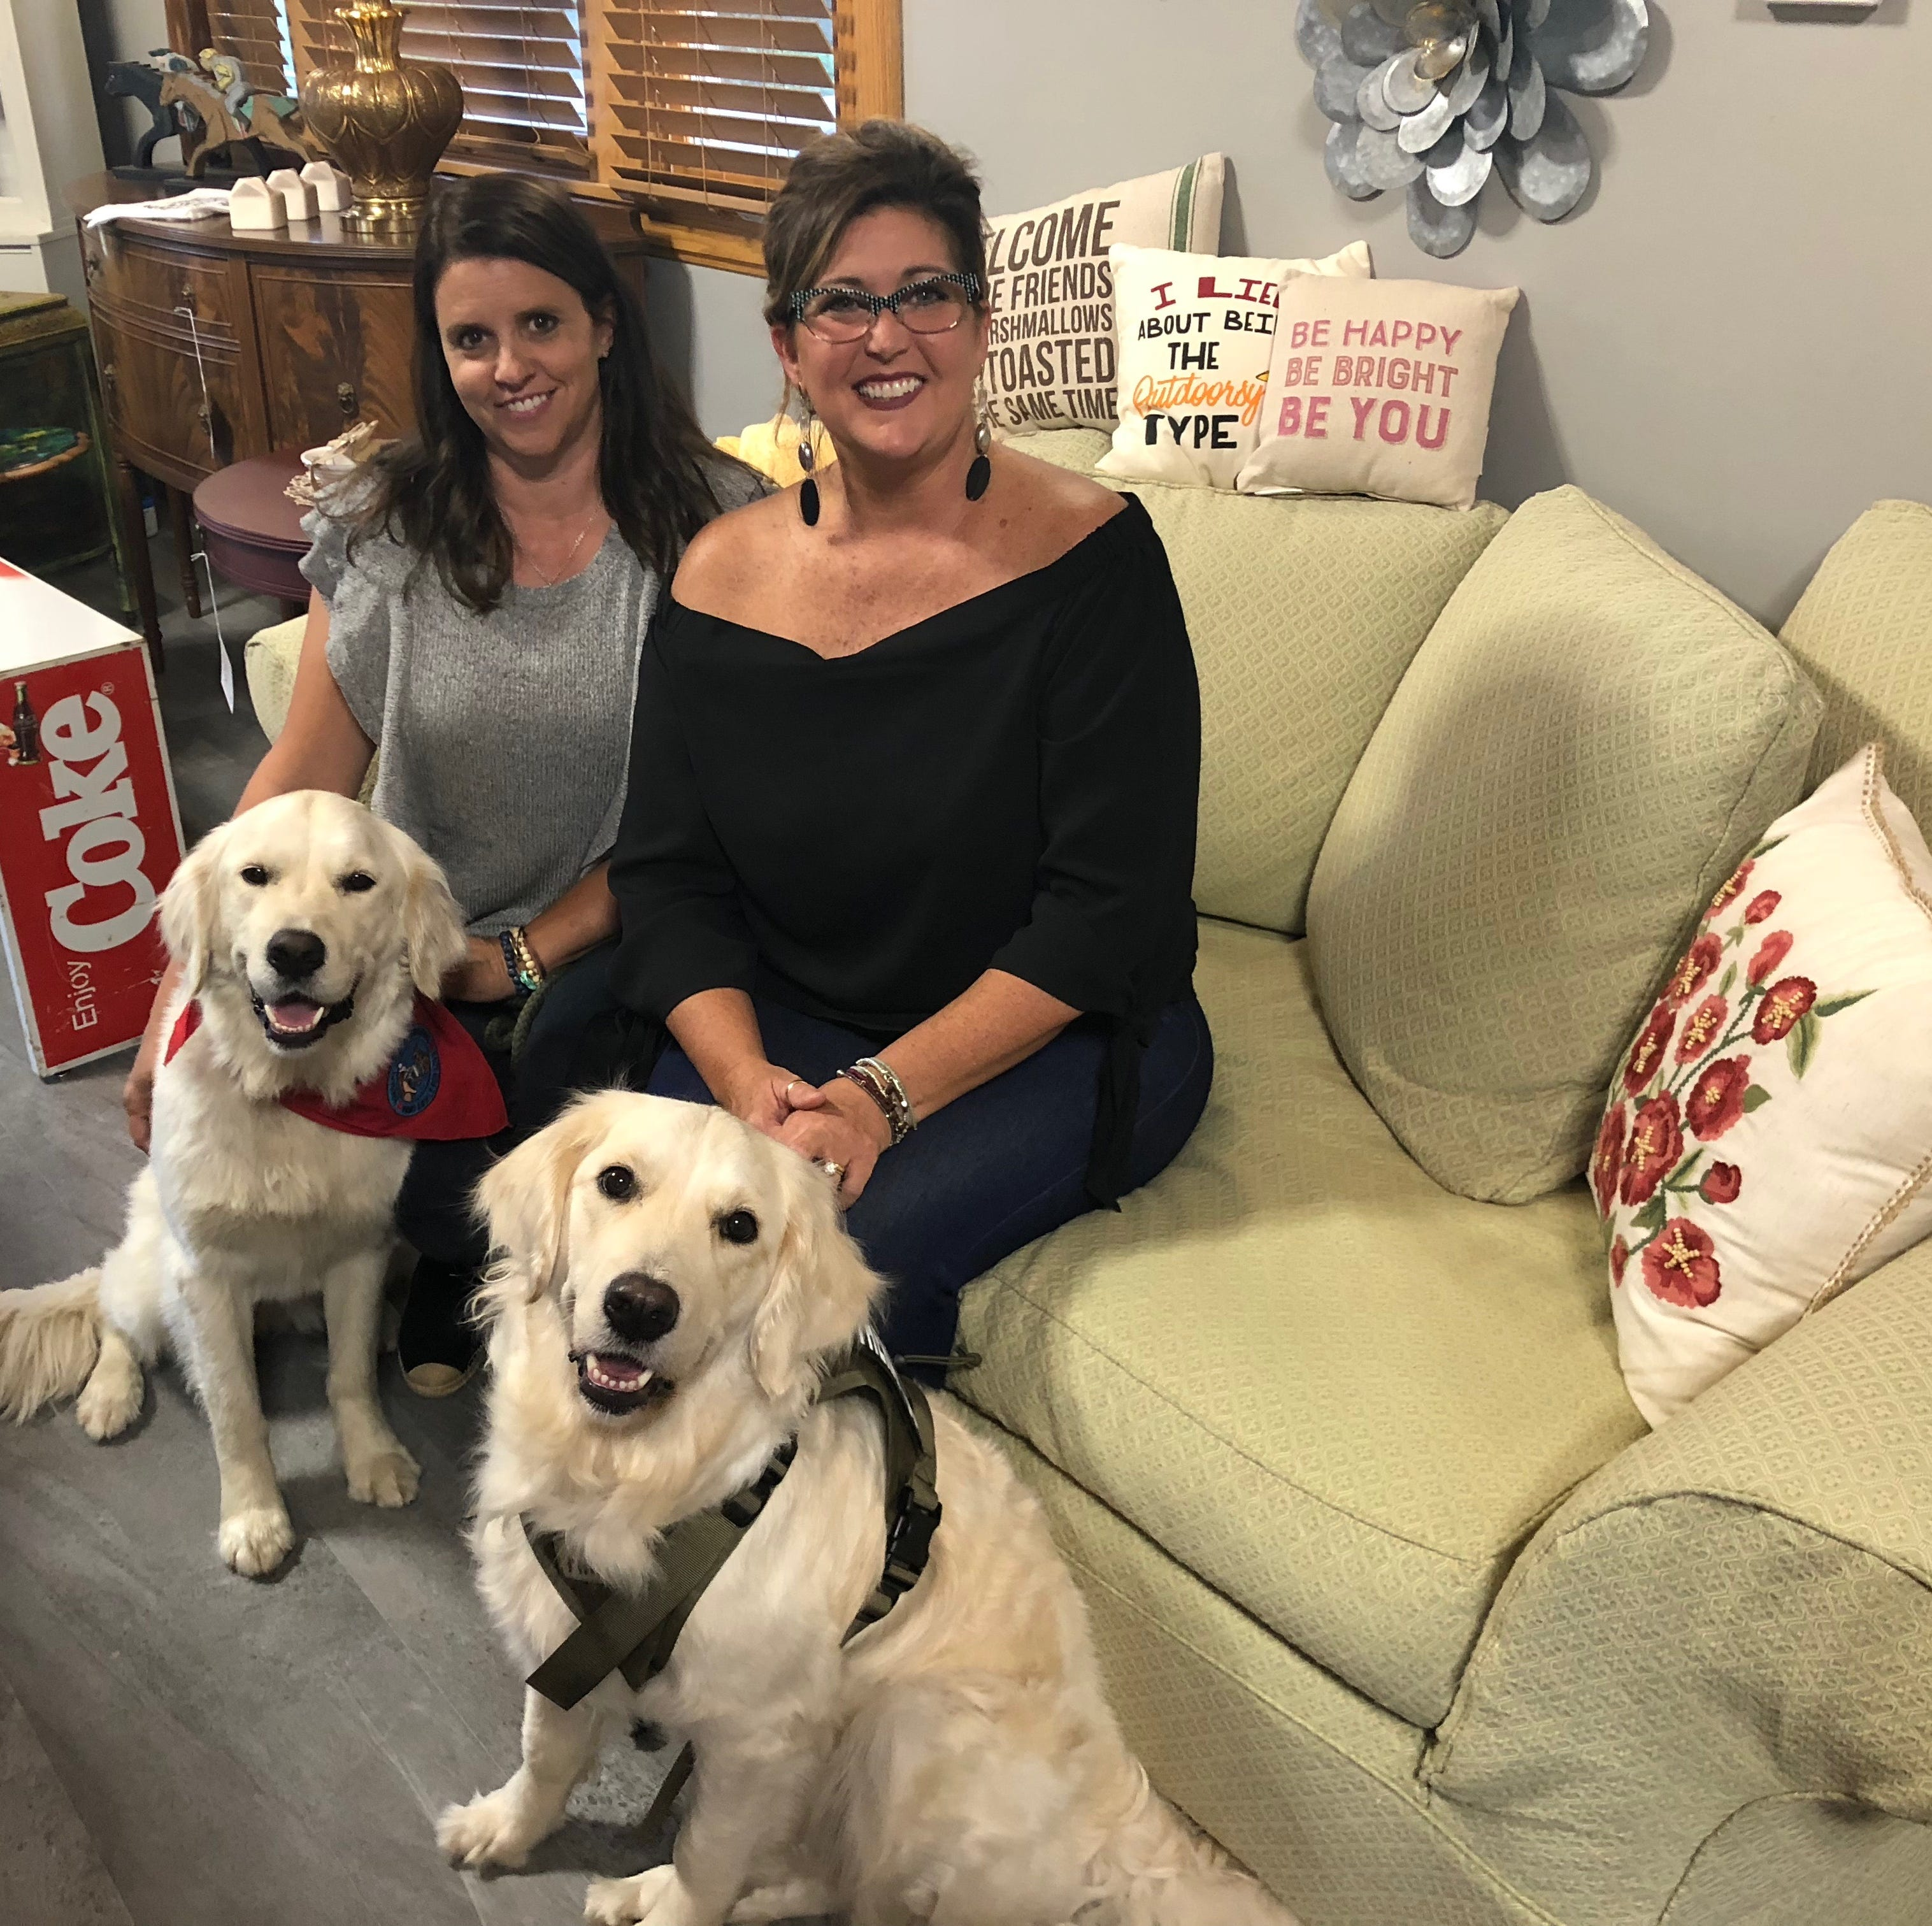 Business start-pups: Pair of dogs lead owners to opening of new antique store in Wausau